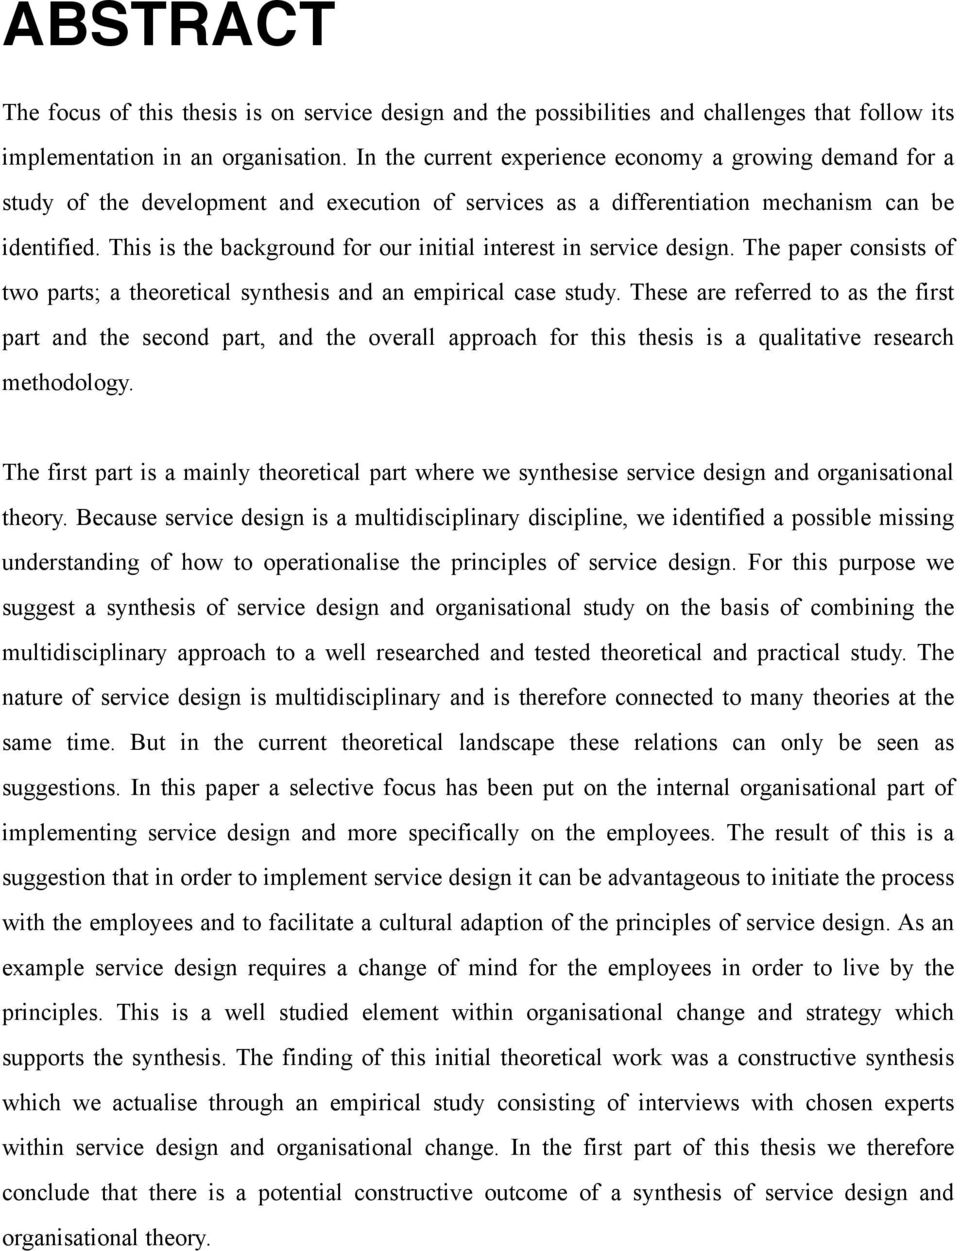 This is the background for our initial interest in service design. The paper consists of two parts; a theoretical synthesis and an empirical case study.